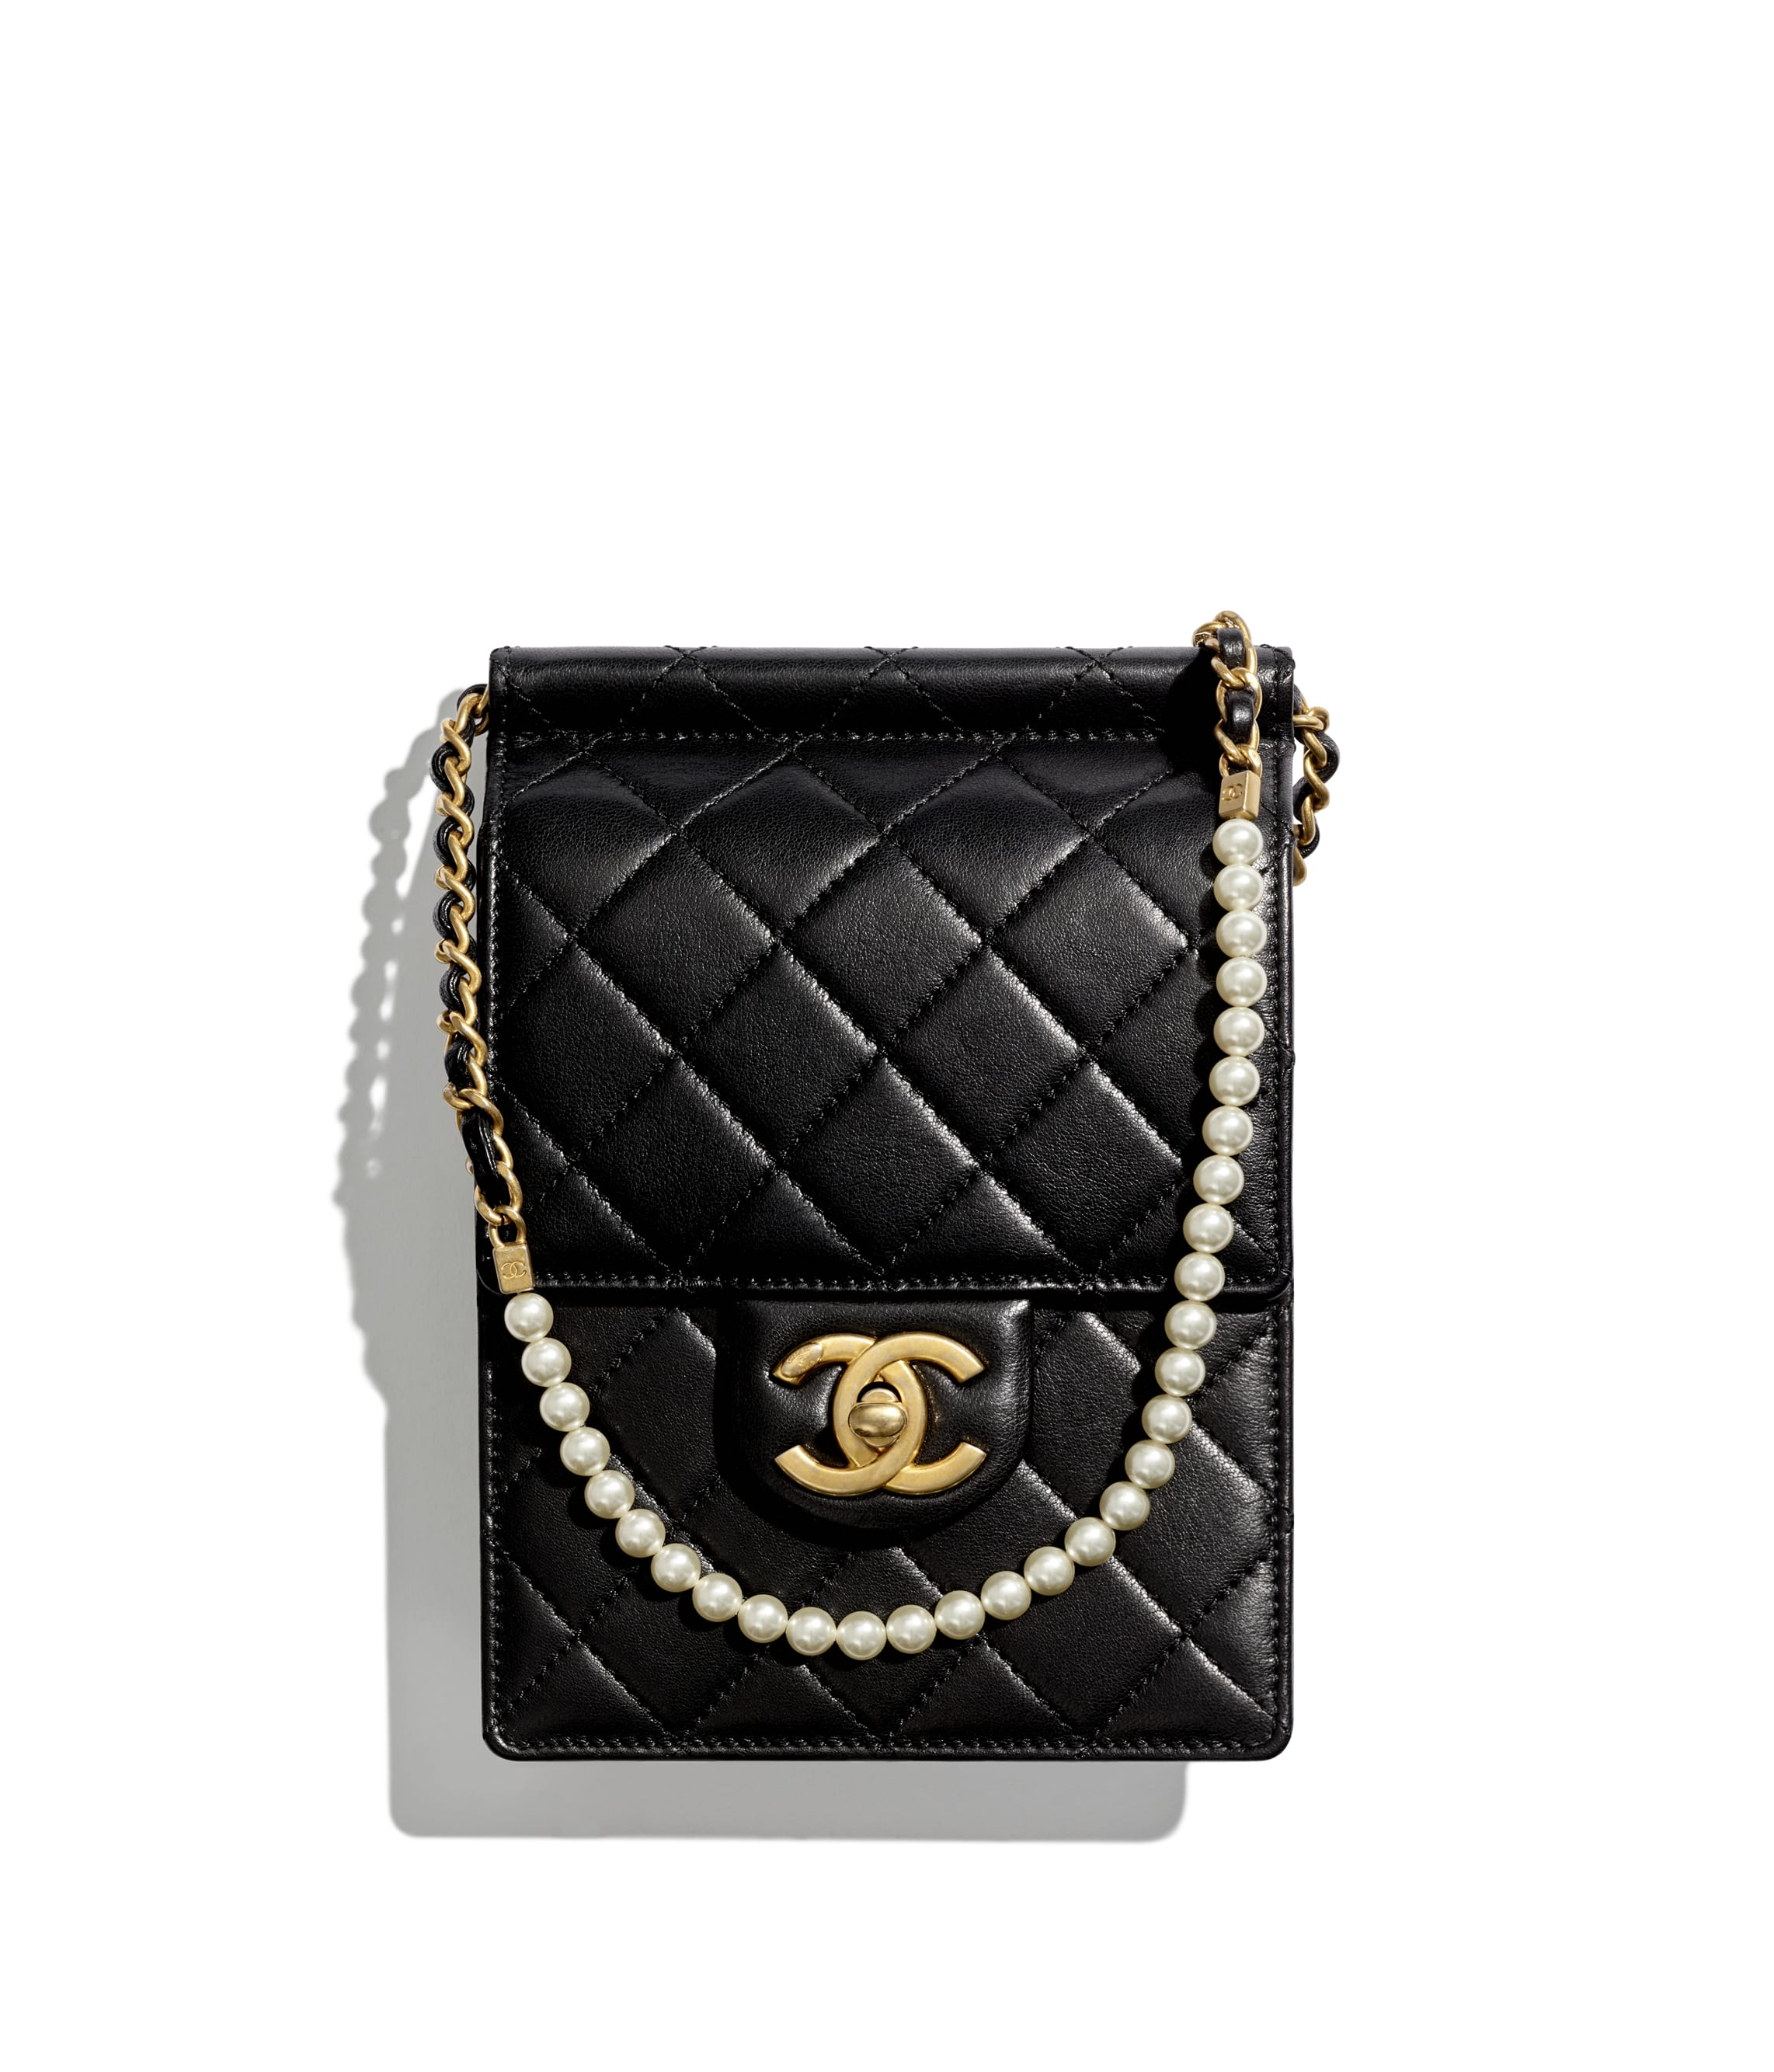 70bfde6280de Clutches with Chain - Small Leather Goods - CHANEL